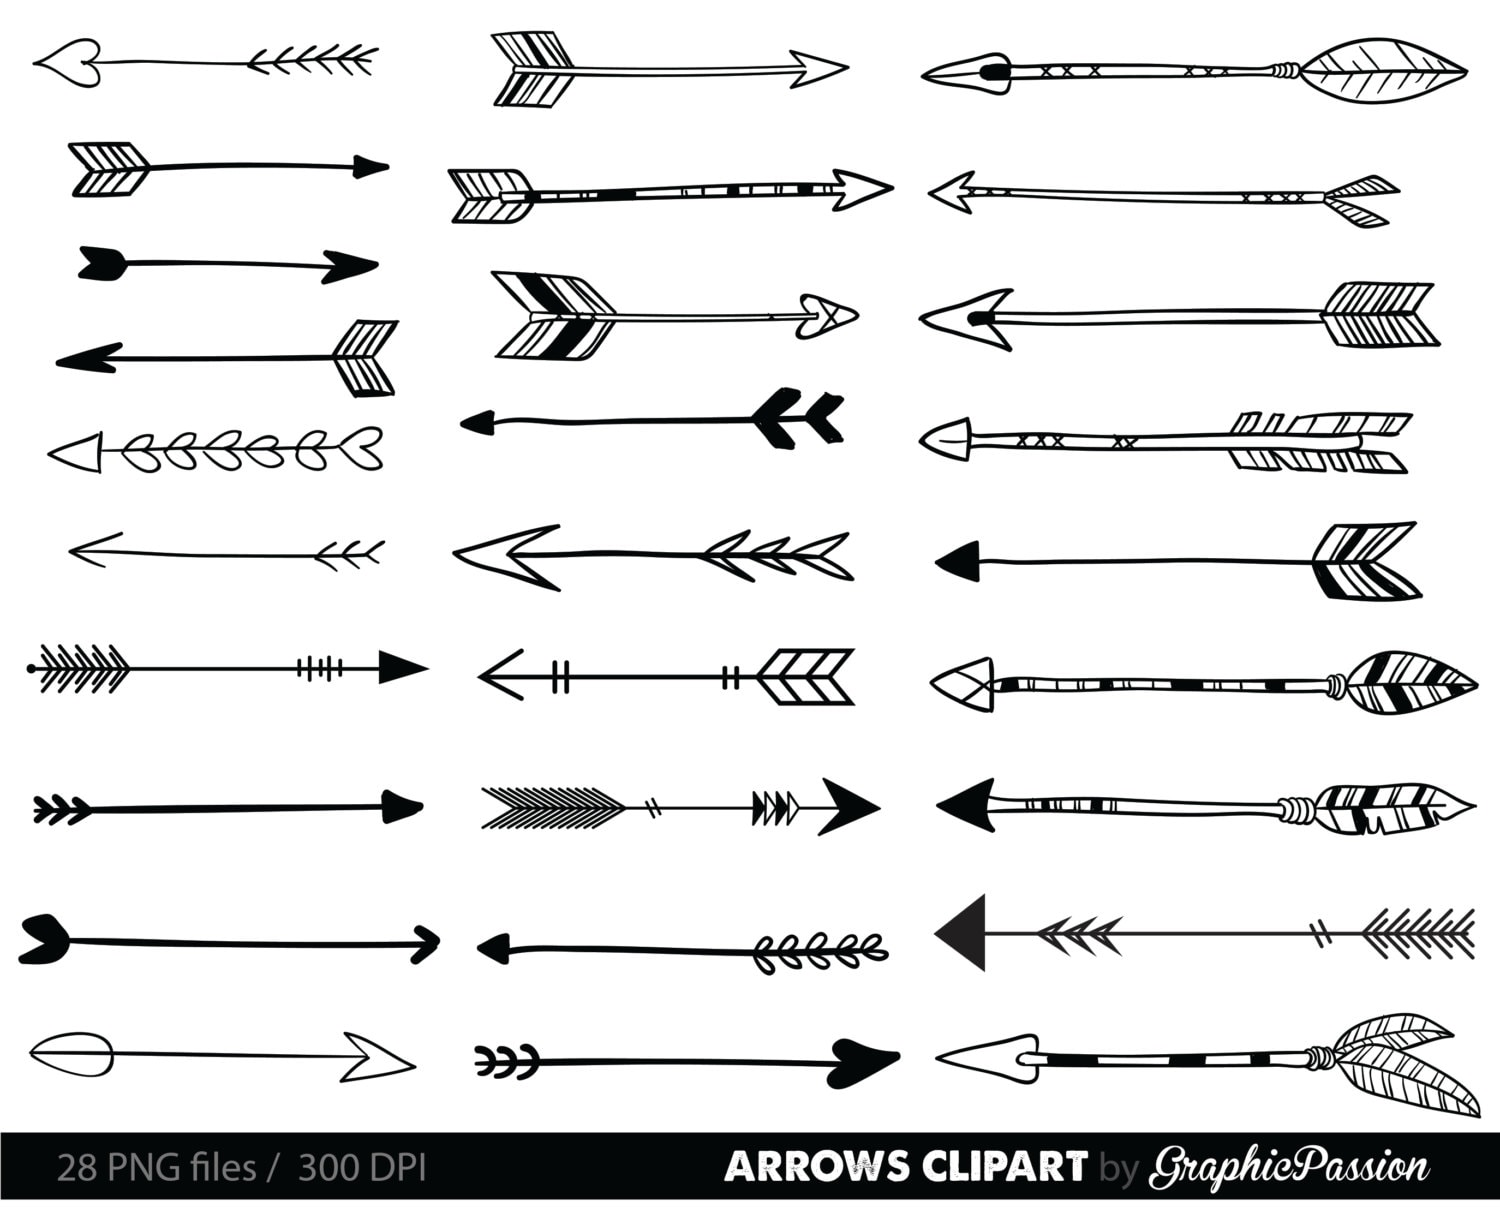 Arrows clip art tribal arrow clipart archery hand drawn | Etsy